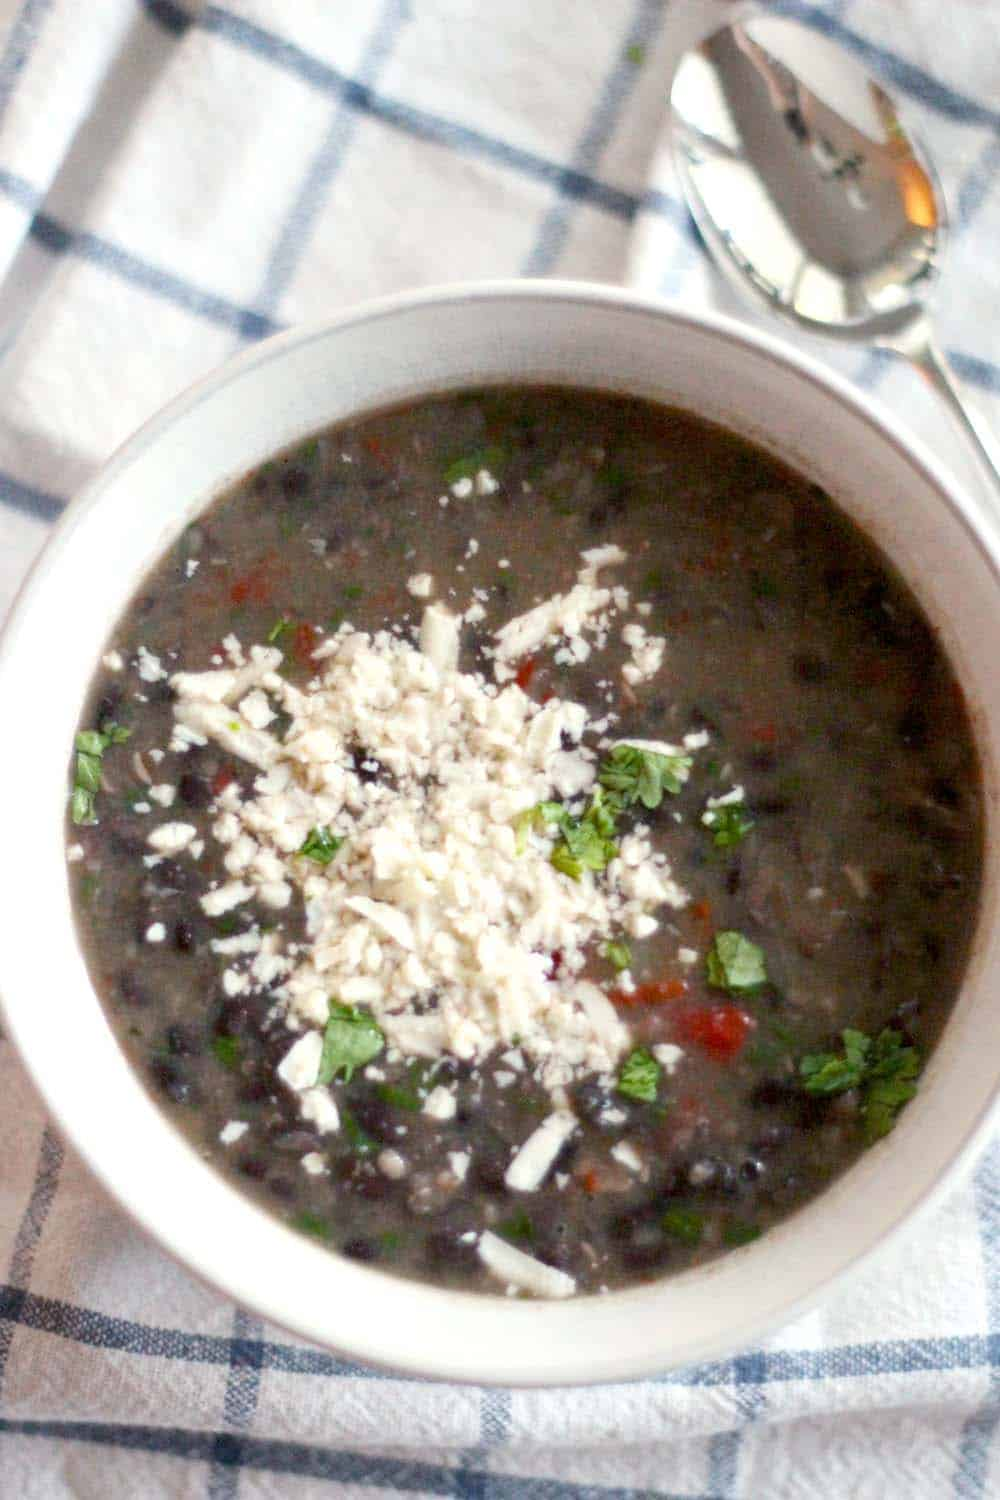 Smoky Slow Cooker Black Bean Soup | This soup is hearty, healthy, and absolutely delicious, and takes only 5 minutes of prep! Let your Crockpot do the work for you. Vegan/vegetarian optional.